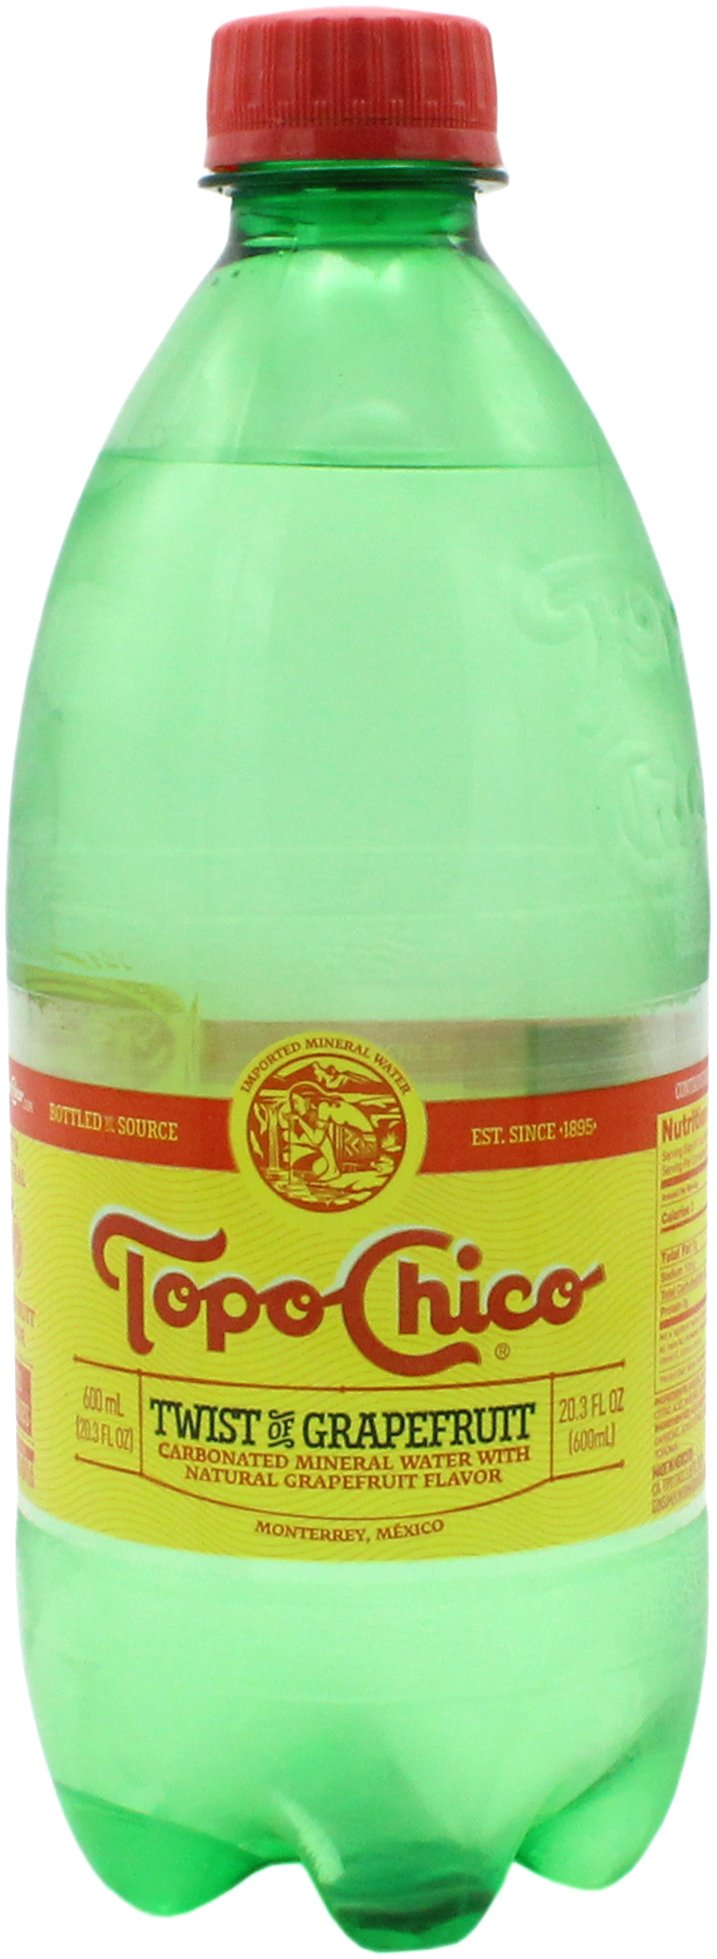 Topo Chico Twist Of Grapefruit Sparkling Mineral Water Shop Water At H E B